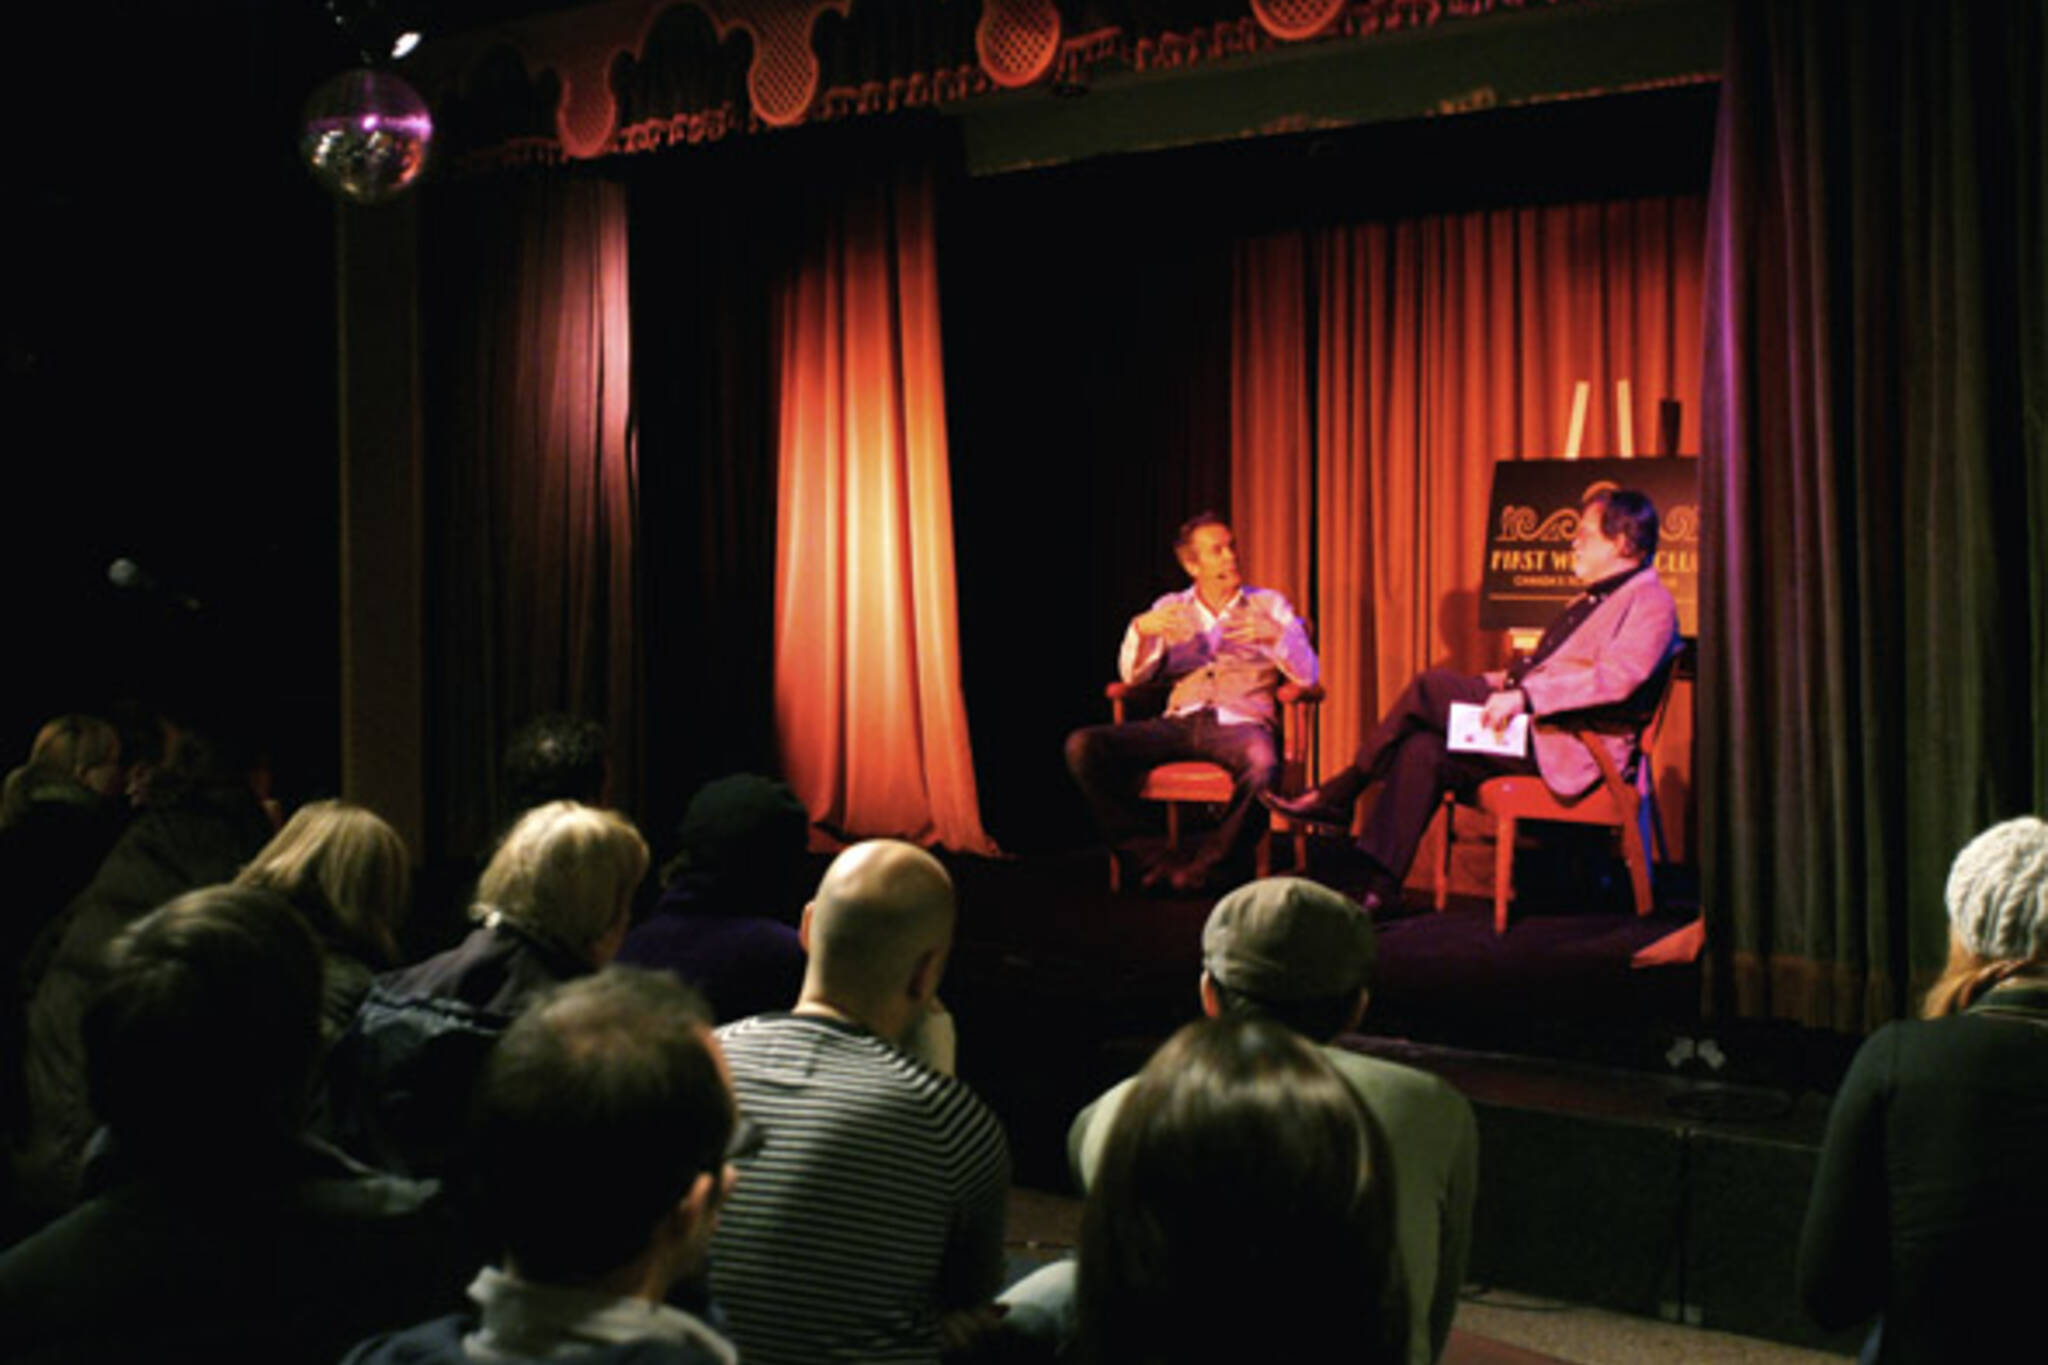 First Weekend Club Q&A with C.R.A.Z.Y. film director Jean-Marc Valee at The Drake Hotel Underground